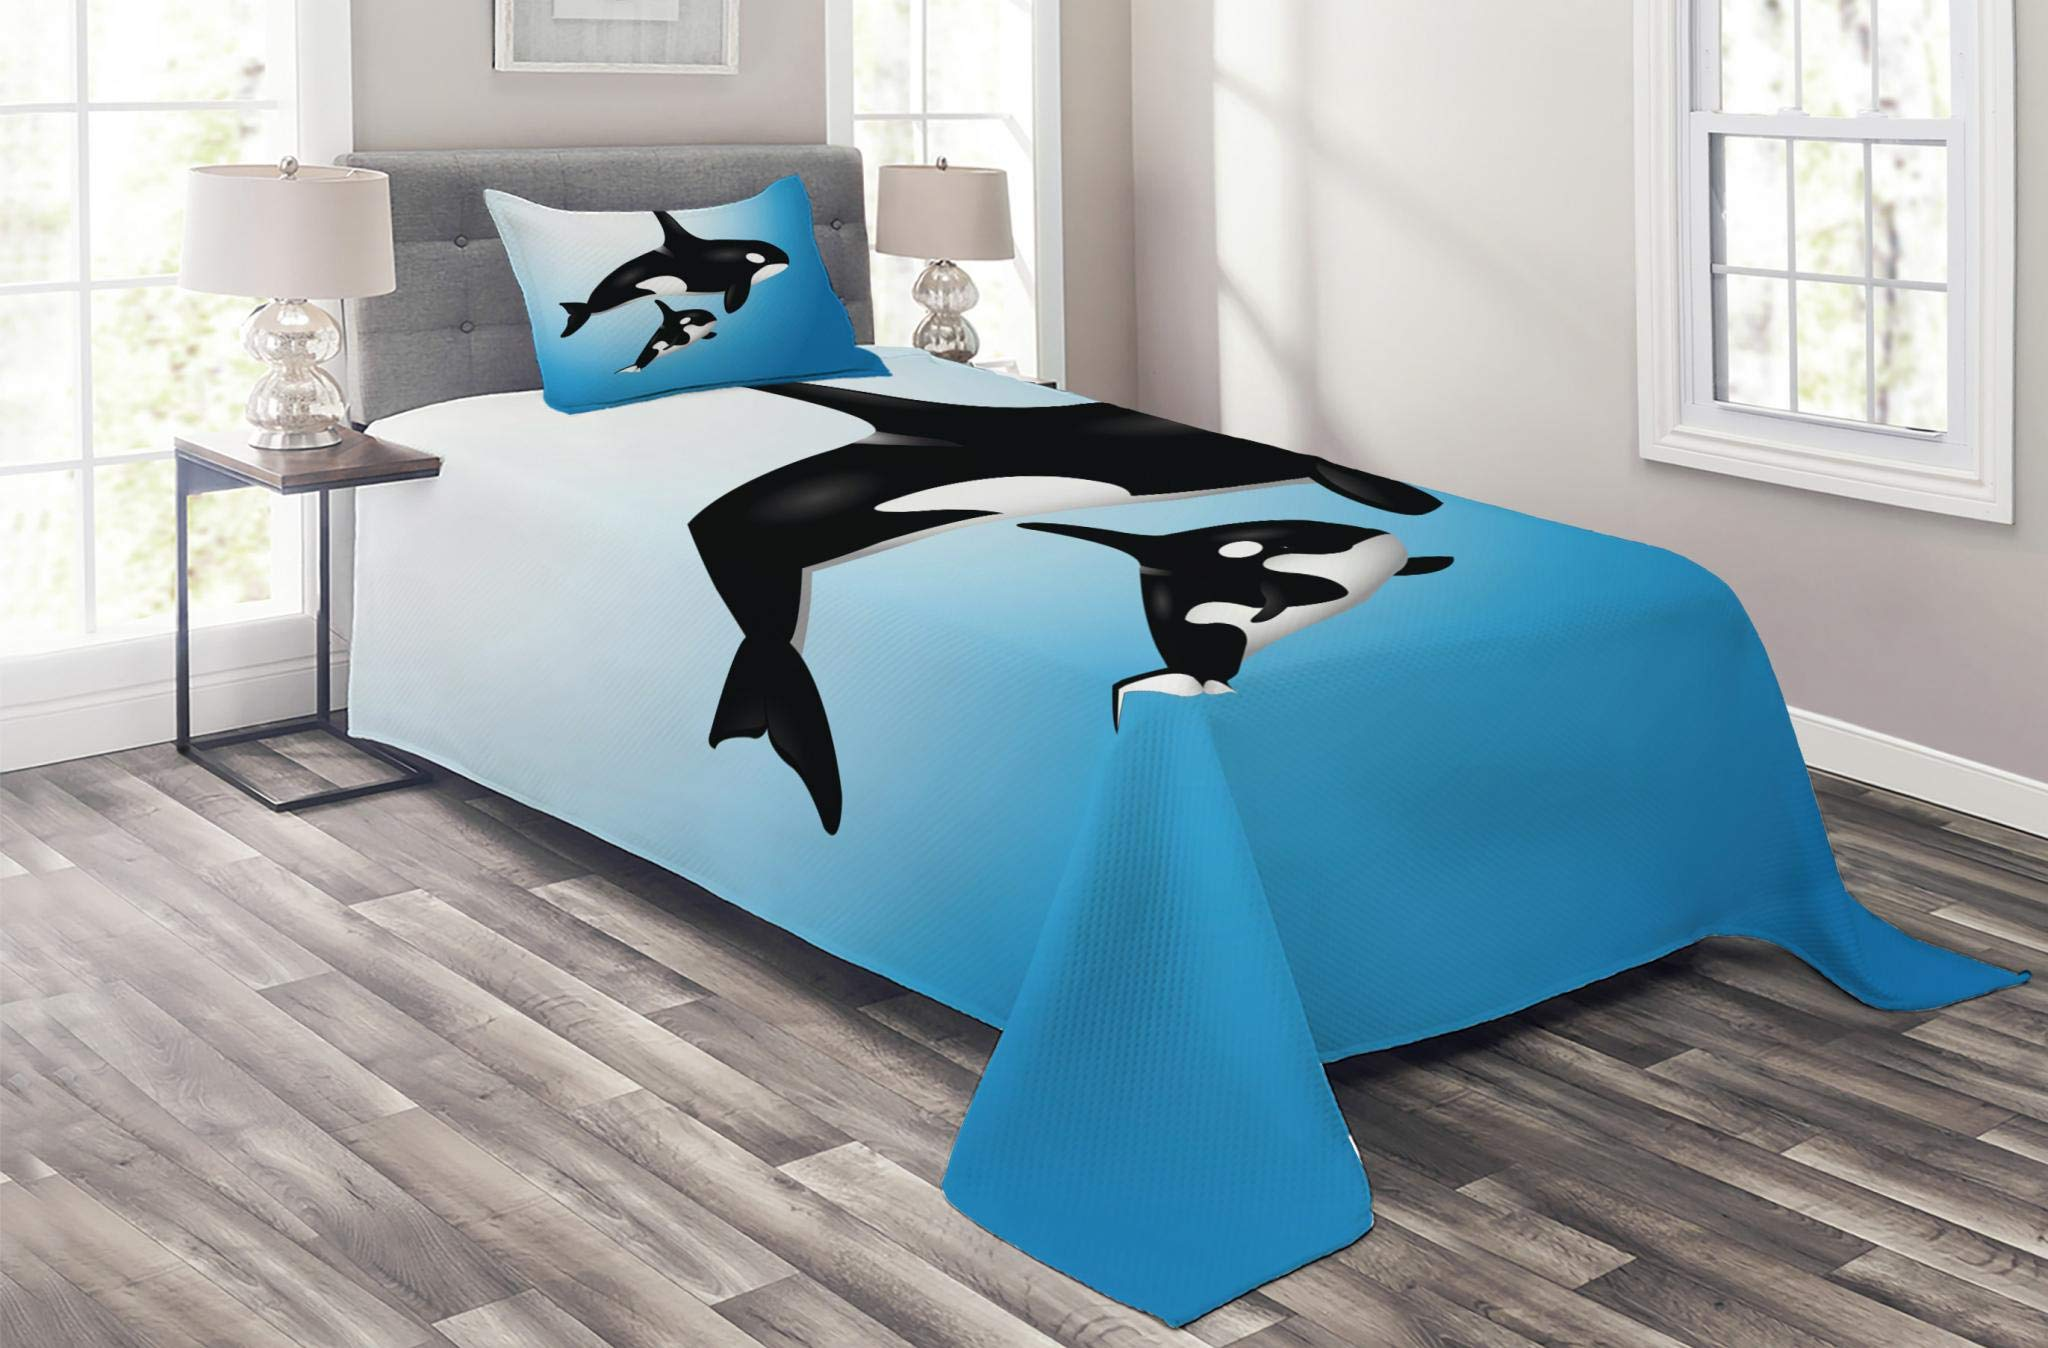 Lunarable Whale Coverlet Set Twin Size, Orca Family Mother and Baby Swimming in The Ocean Children Parenthood Theme, 2 Piece Decorative Quilted Bedspread Set with 1 Pillow Sham, White Black by Lunarable